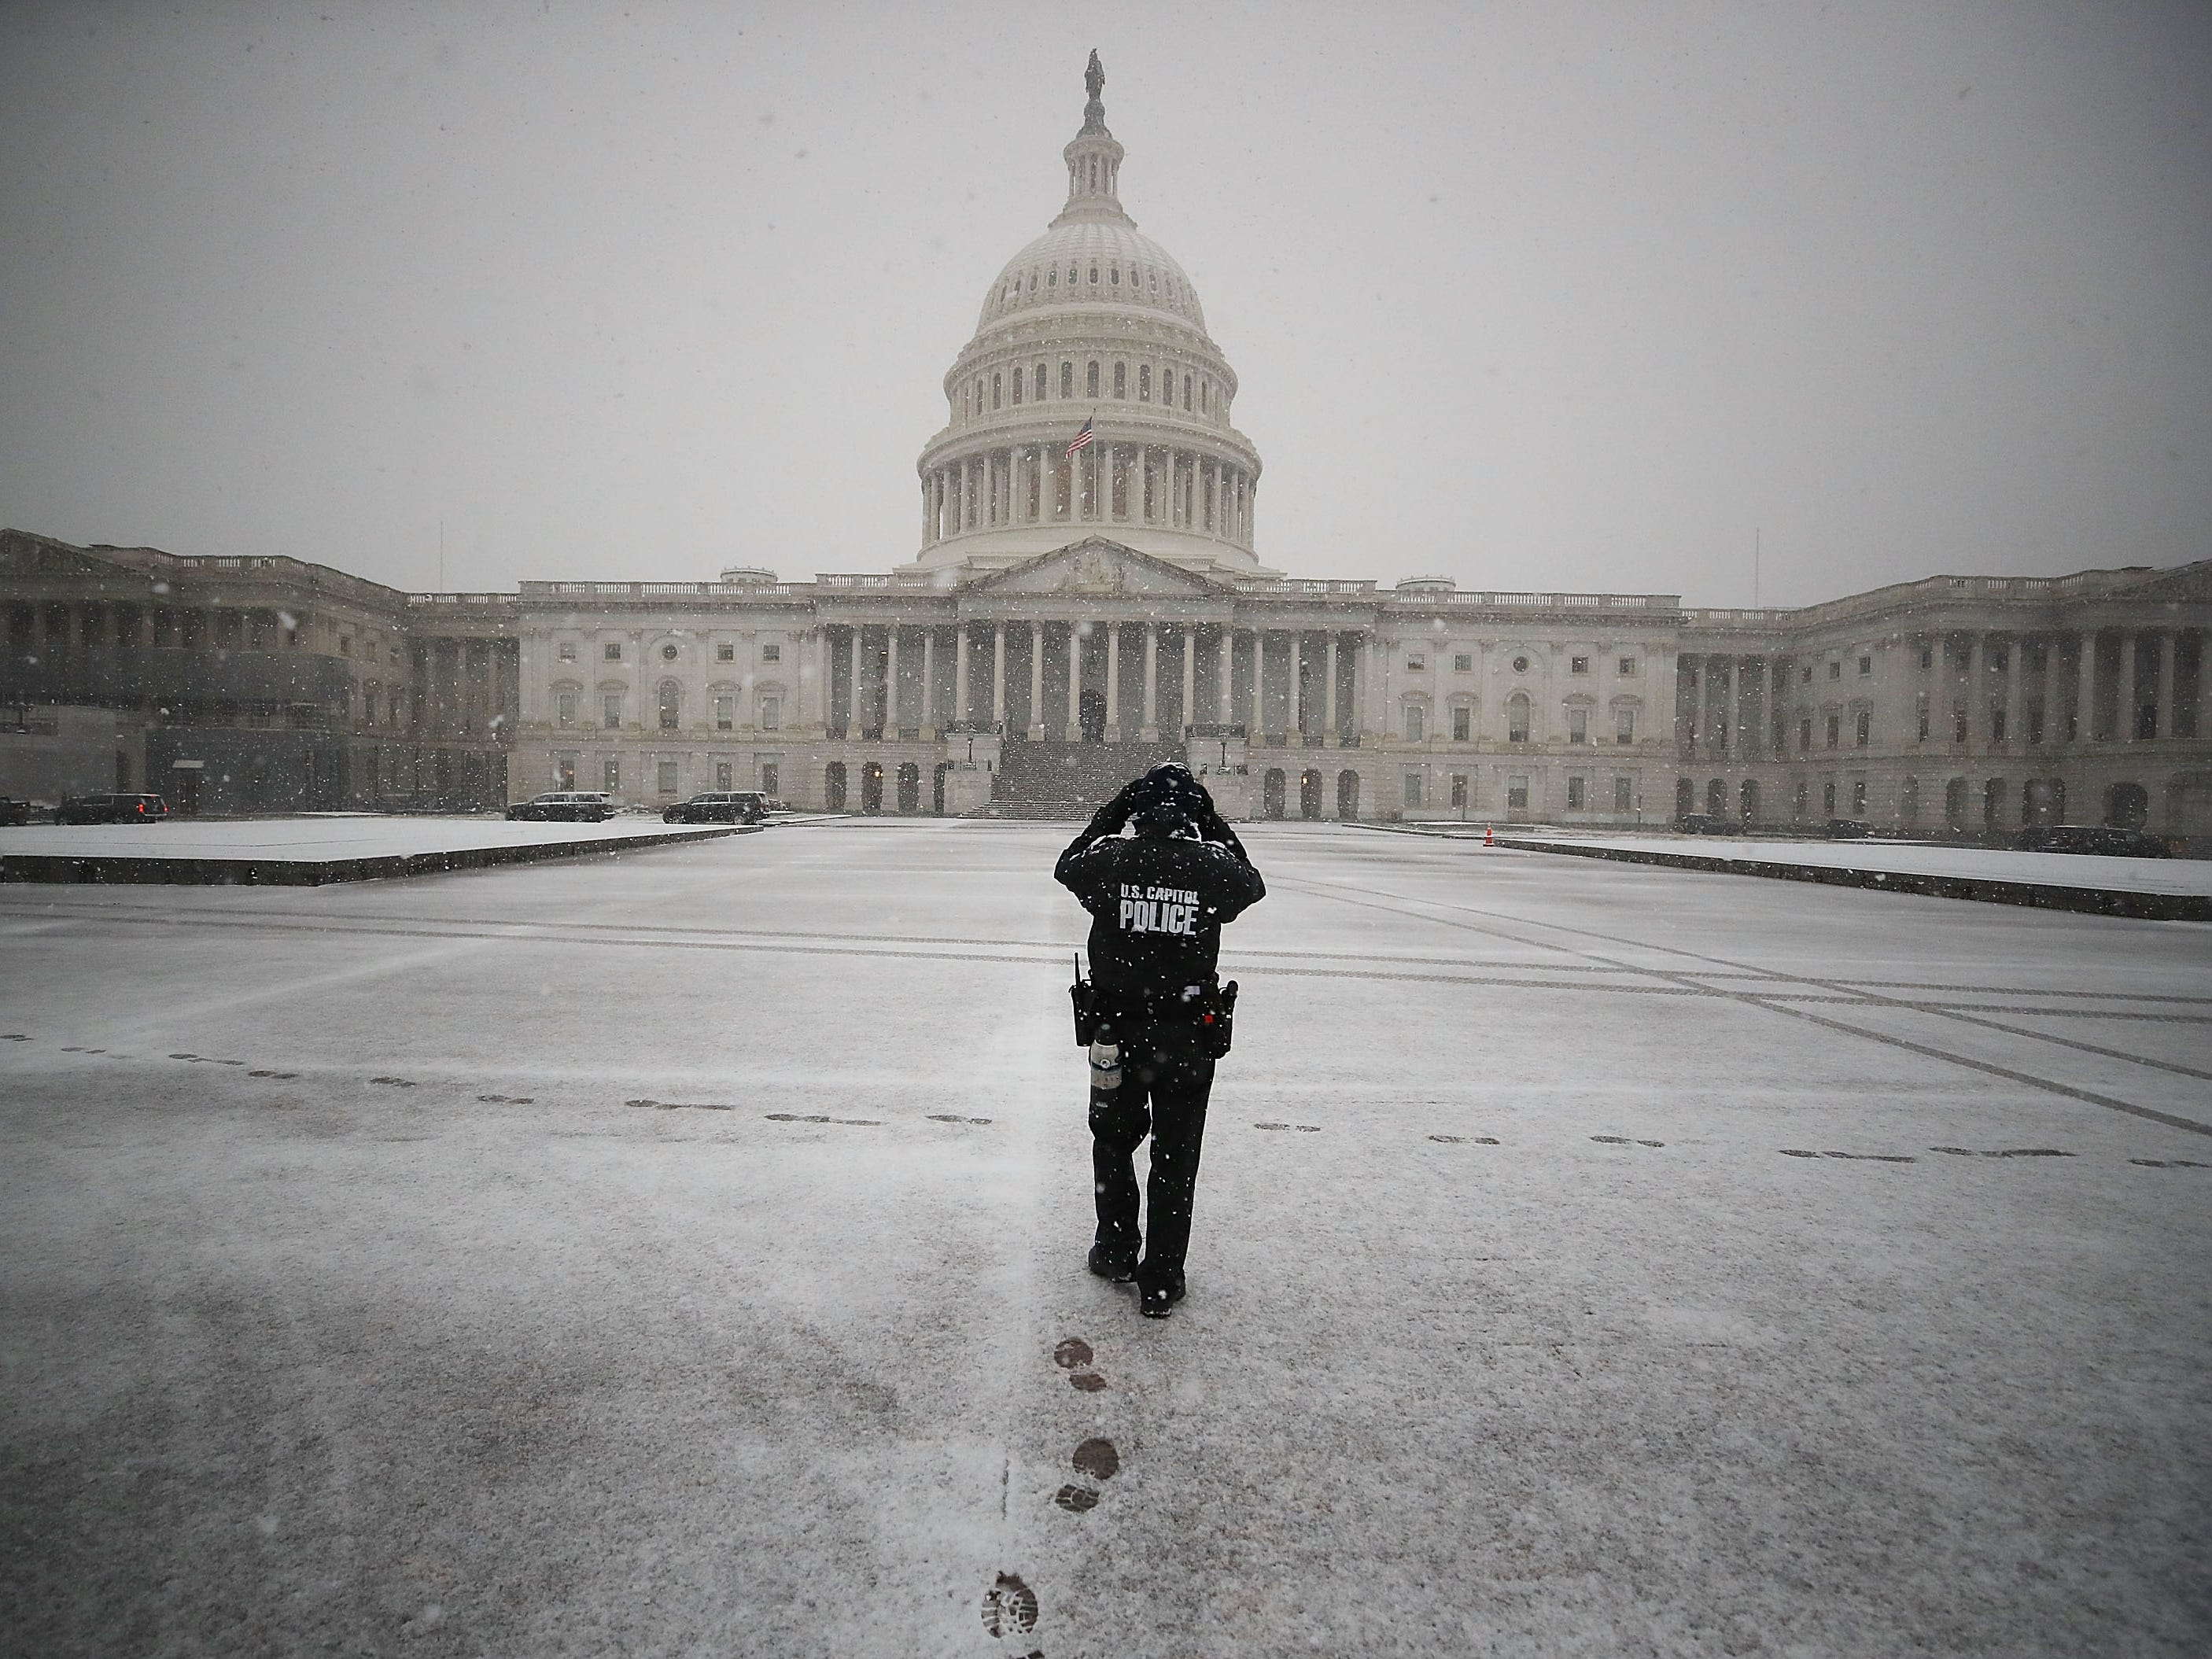 A U.S. Capitol Police Officer patrols the Capitol plaza as snow falls on Nov. 15, 2018 in Washington, D.C.